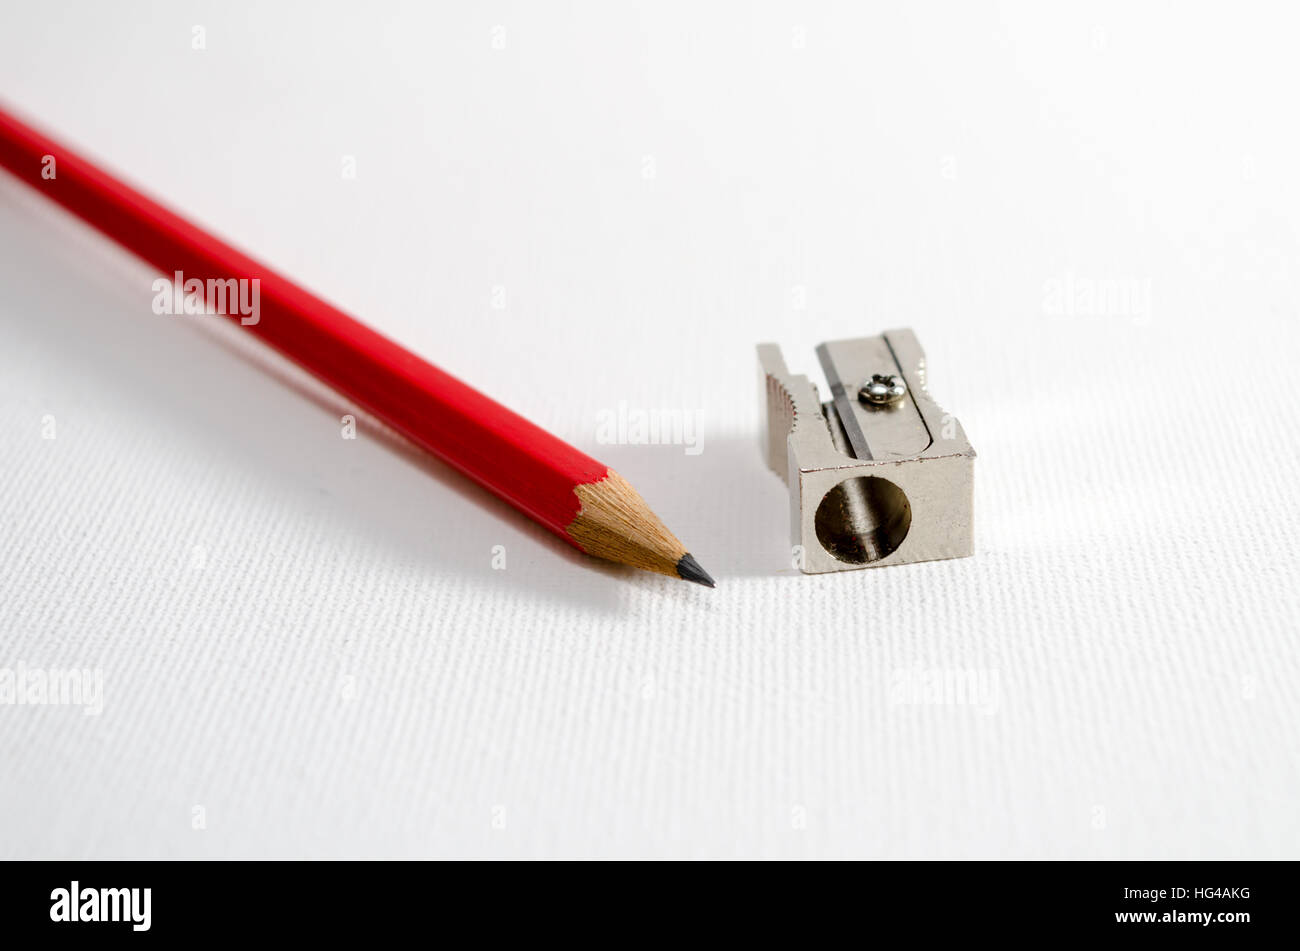 A Studio Photograph of a Pencil and a Pencil Sharpener - Stock Image